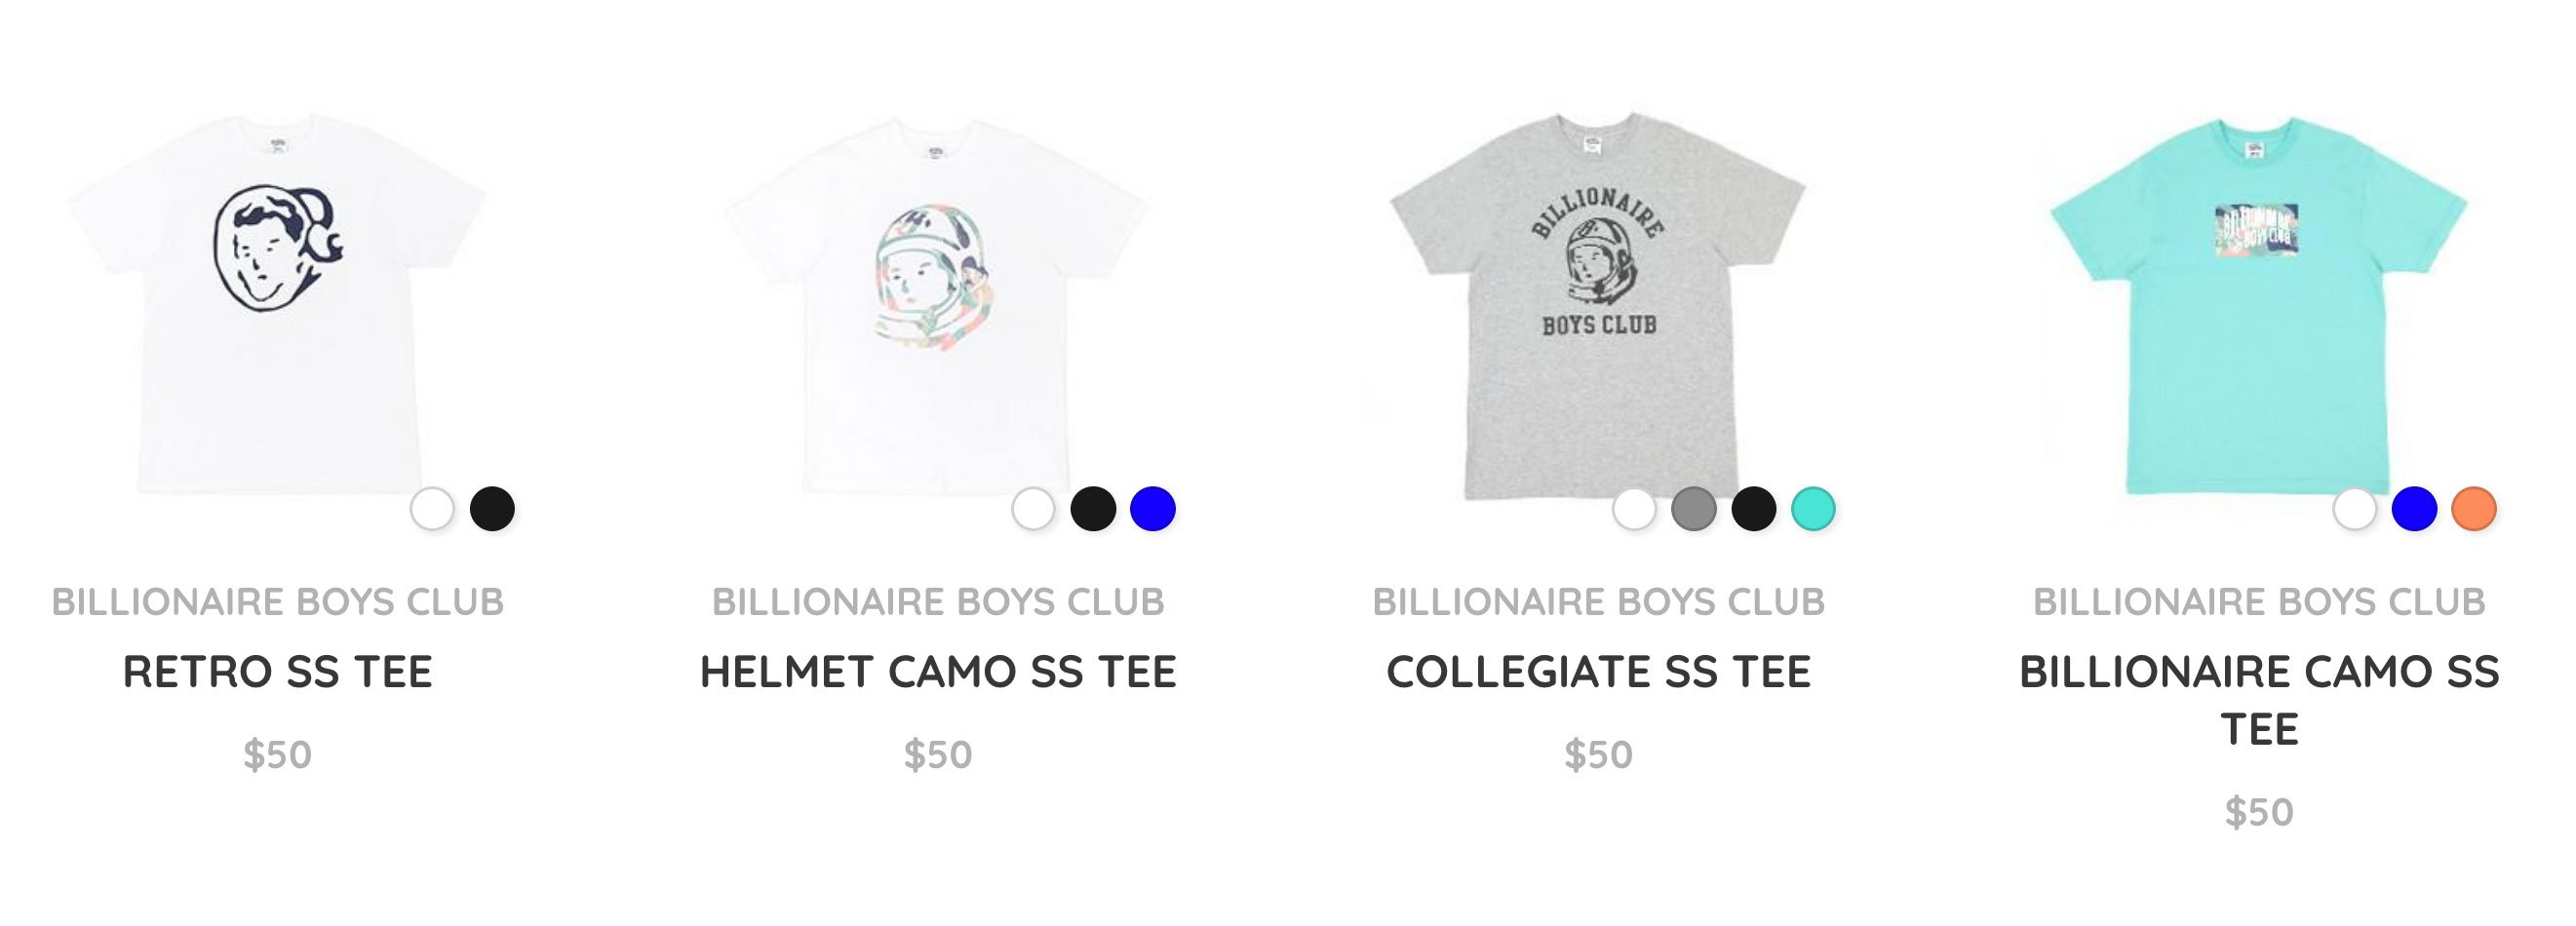 How To Start A Clothing Line Online From Scratch Updated